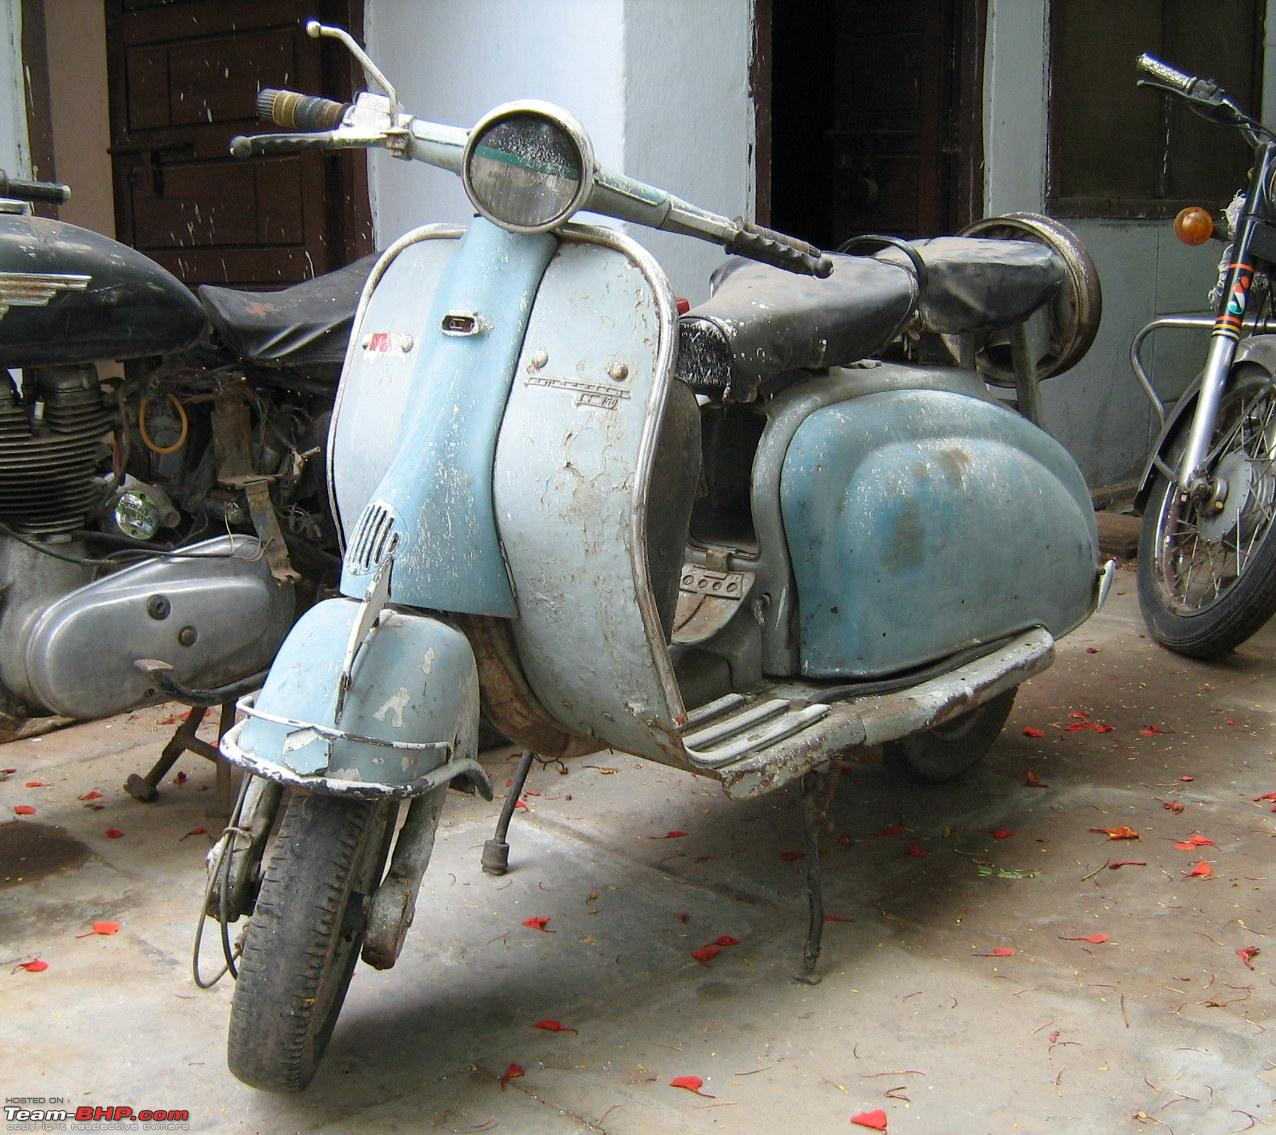 Repair and Restoration – Vespa Scooters